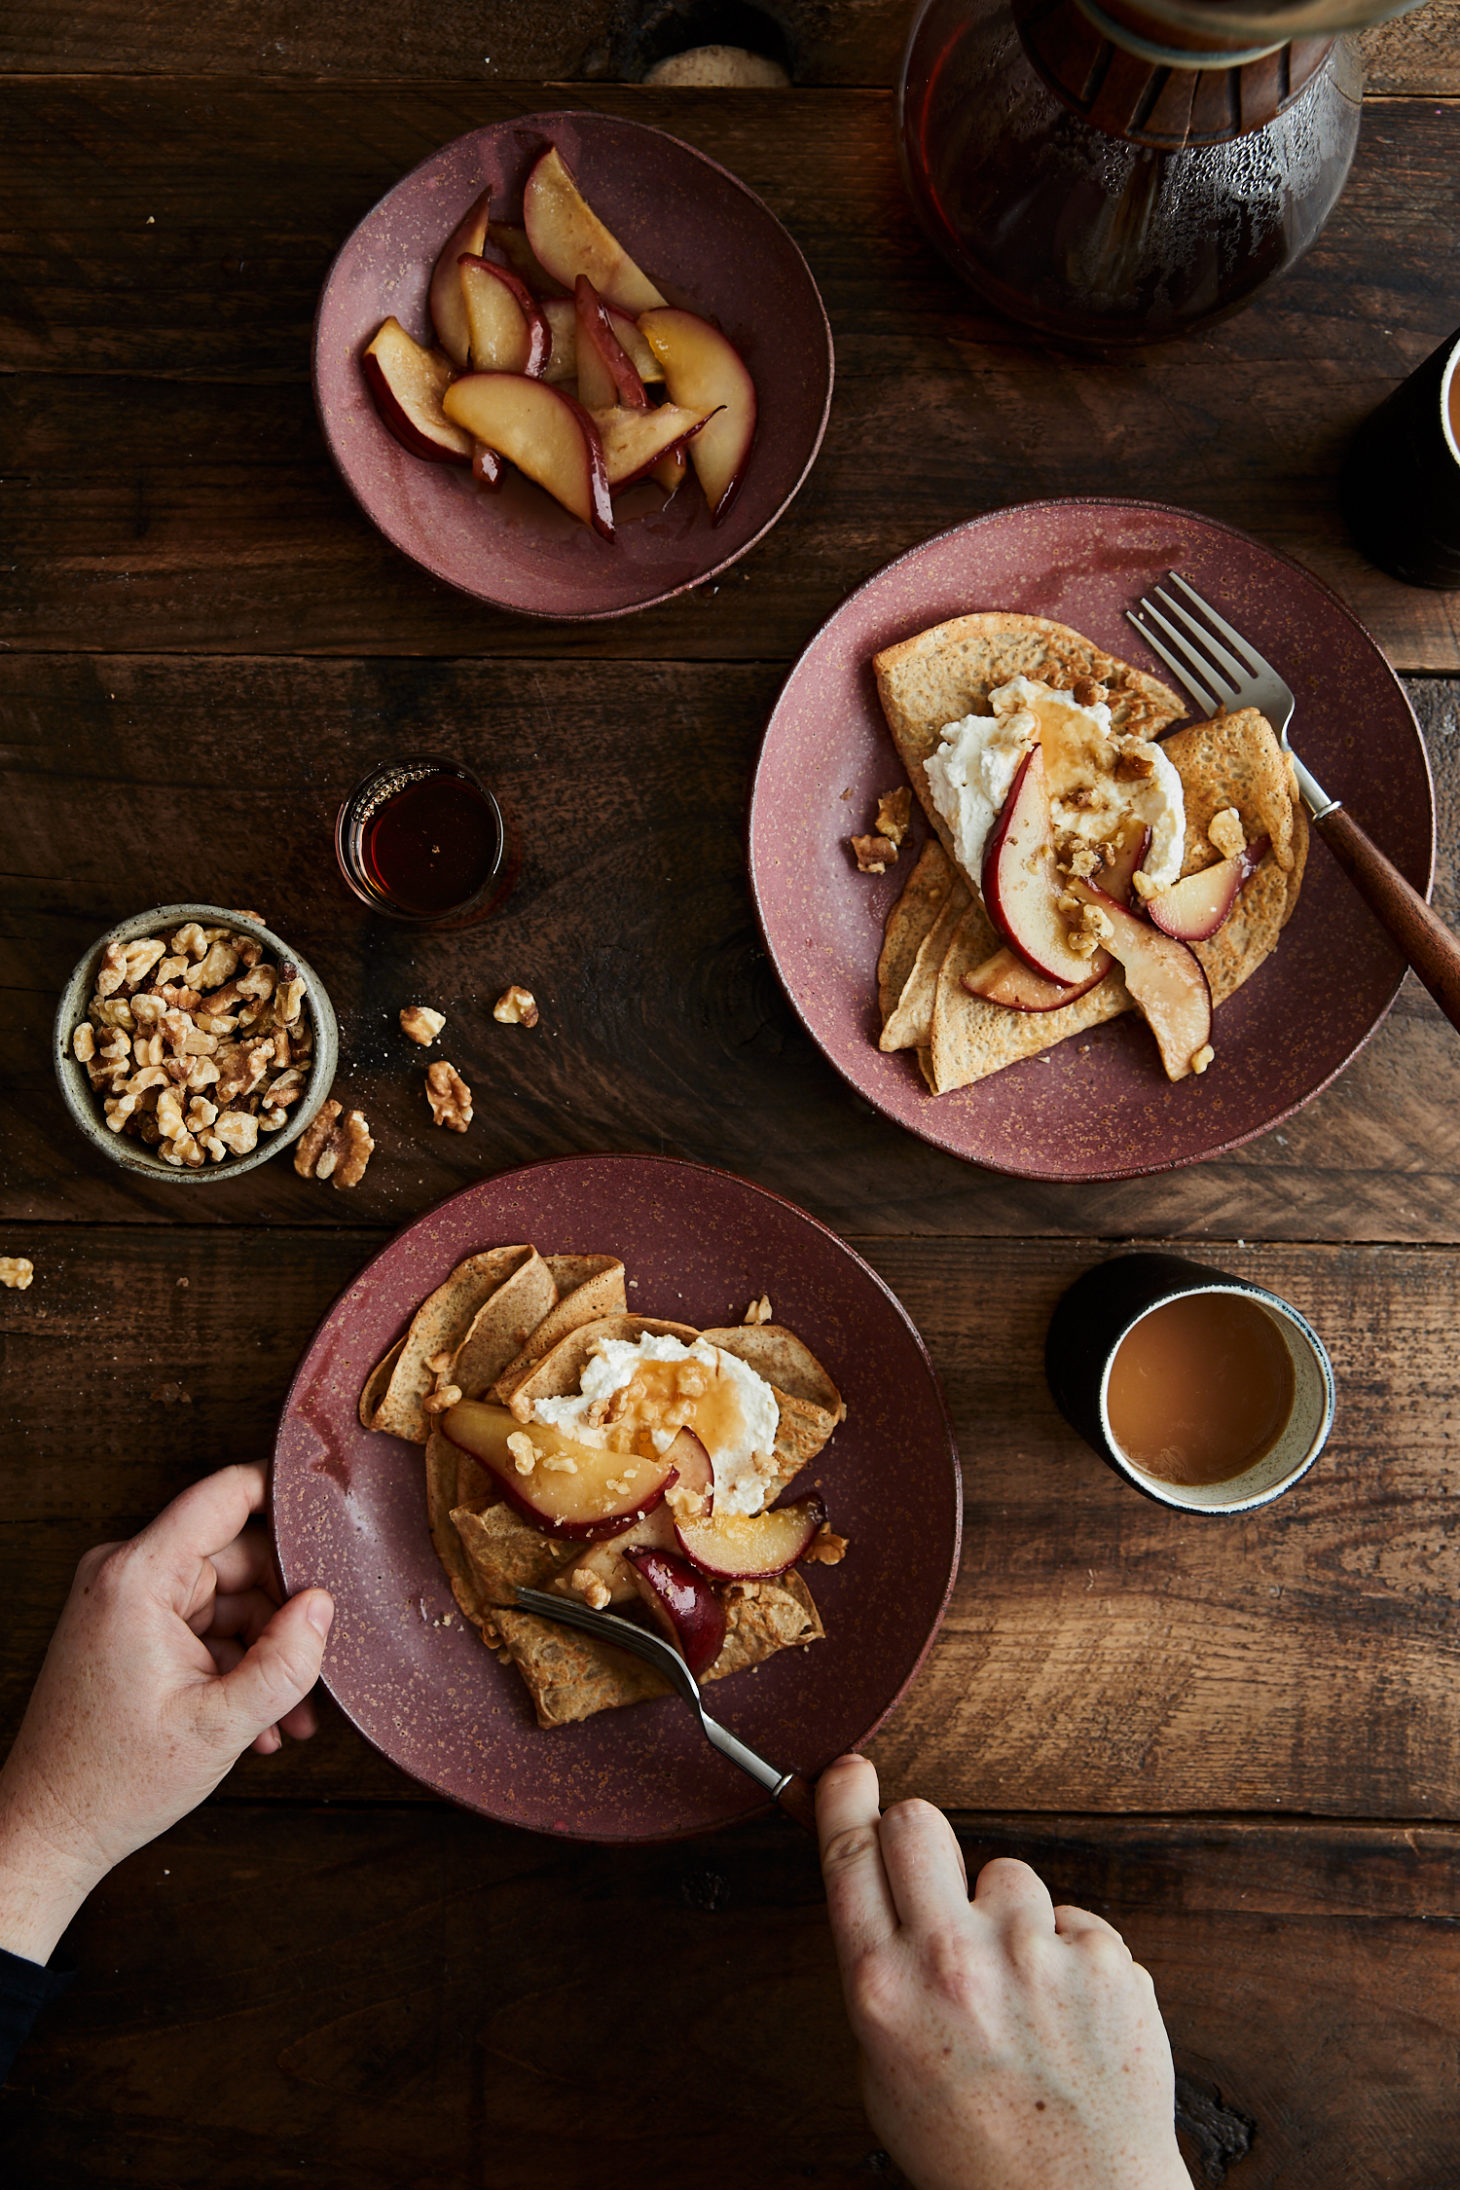 Image of two plates of crepes with pears and hands cutting into one of the crepes.